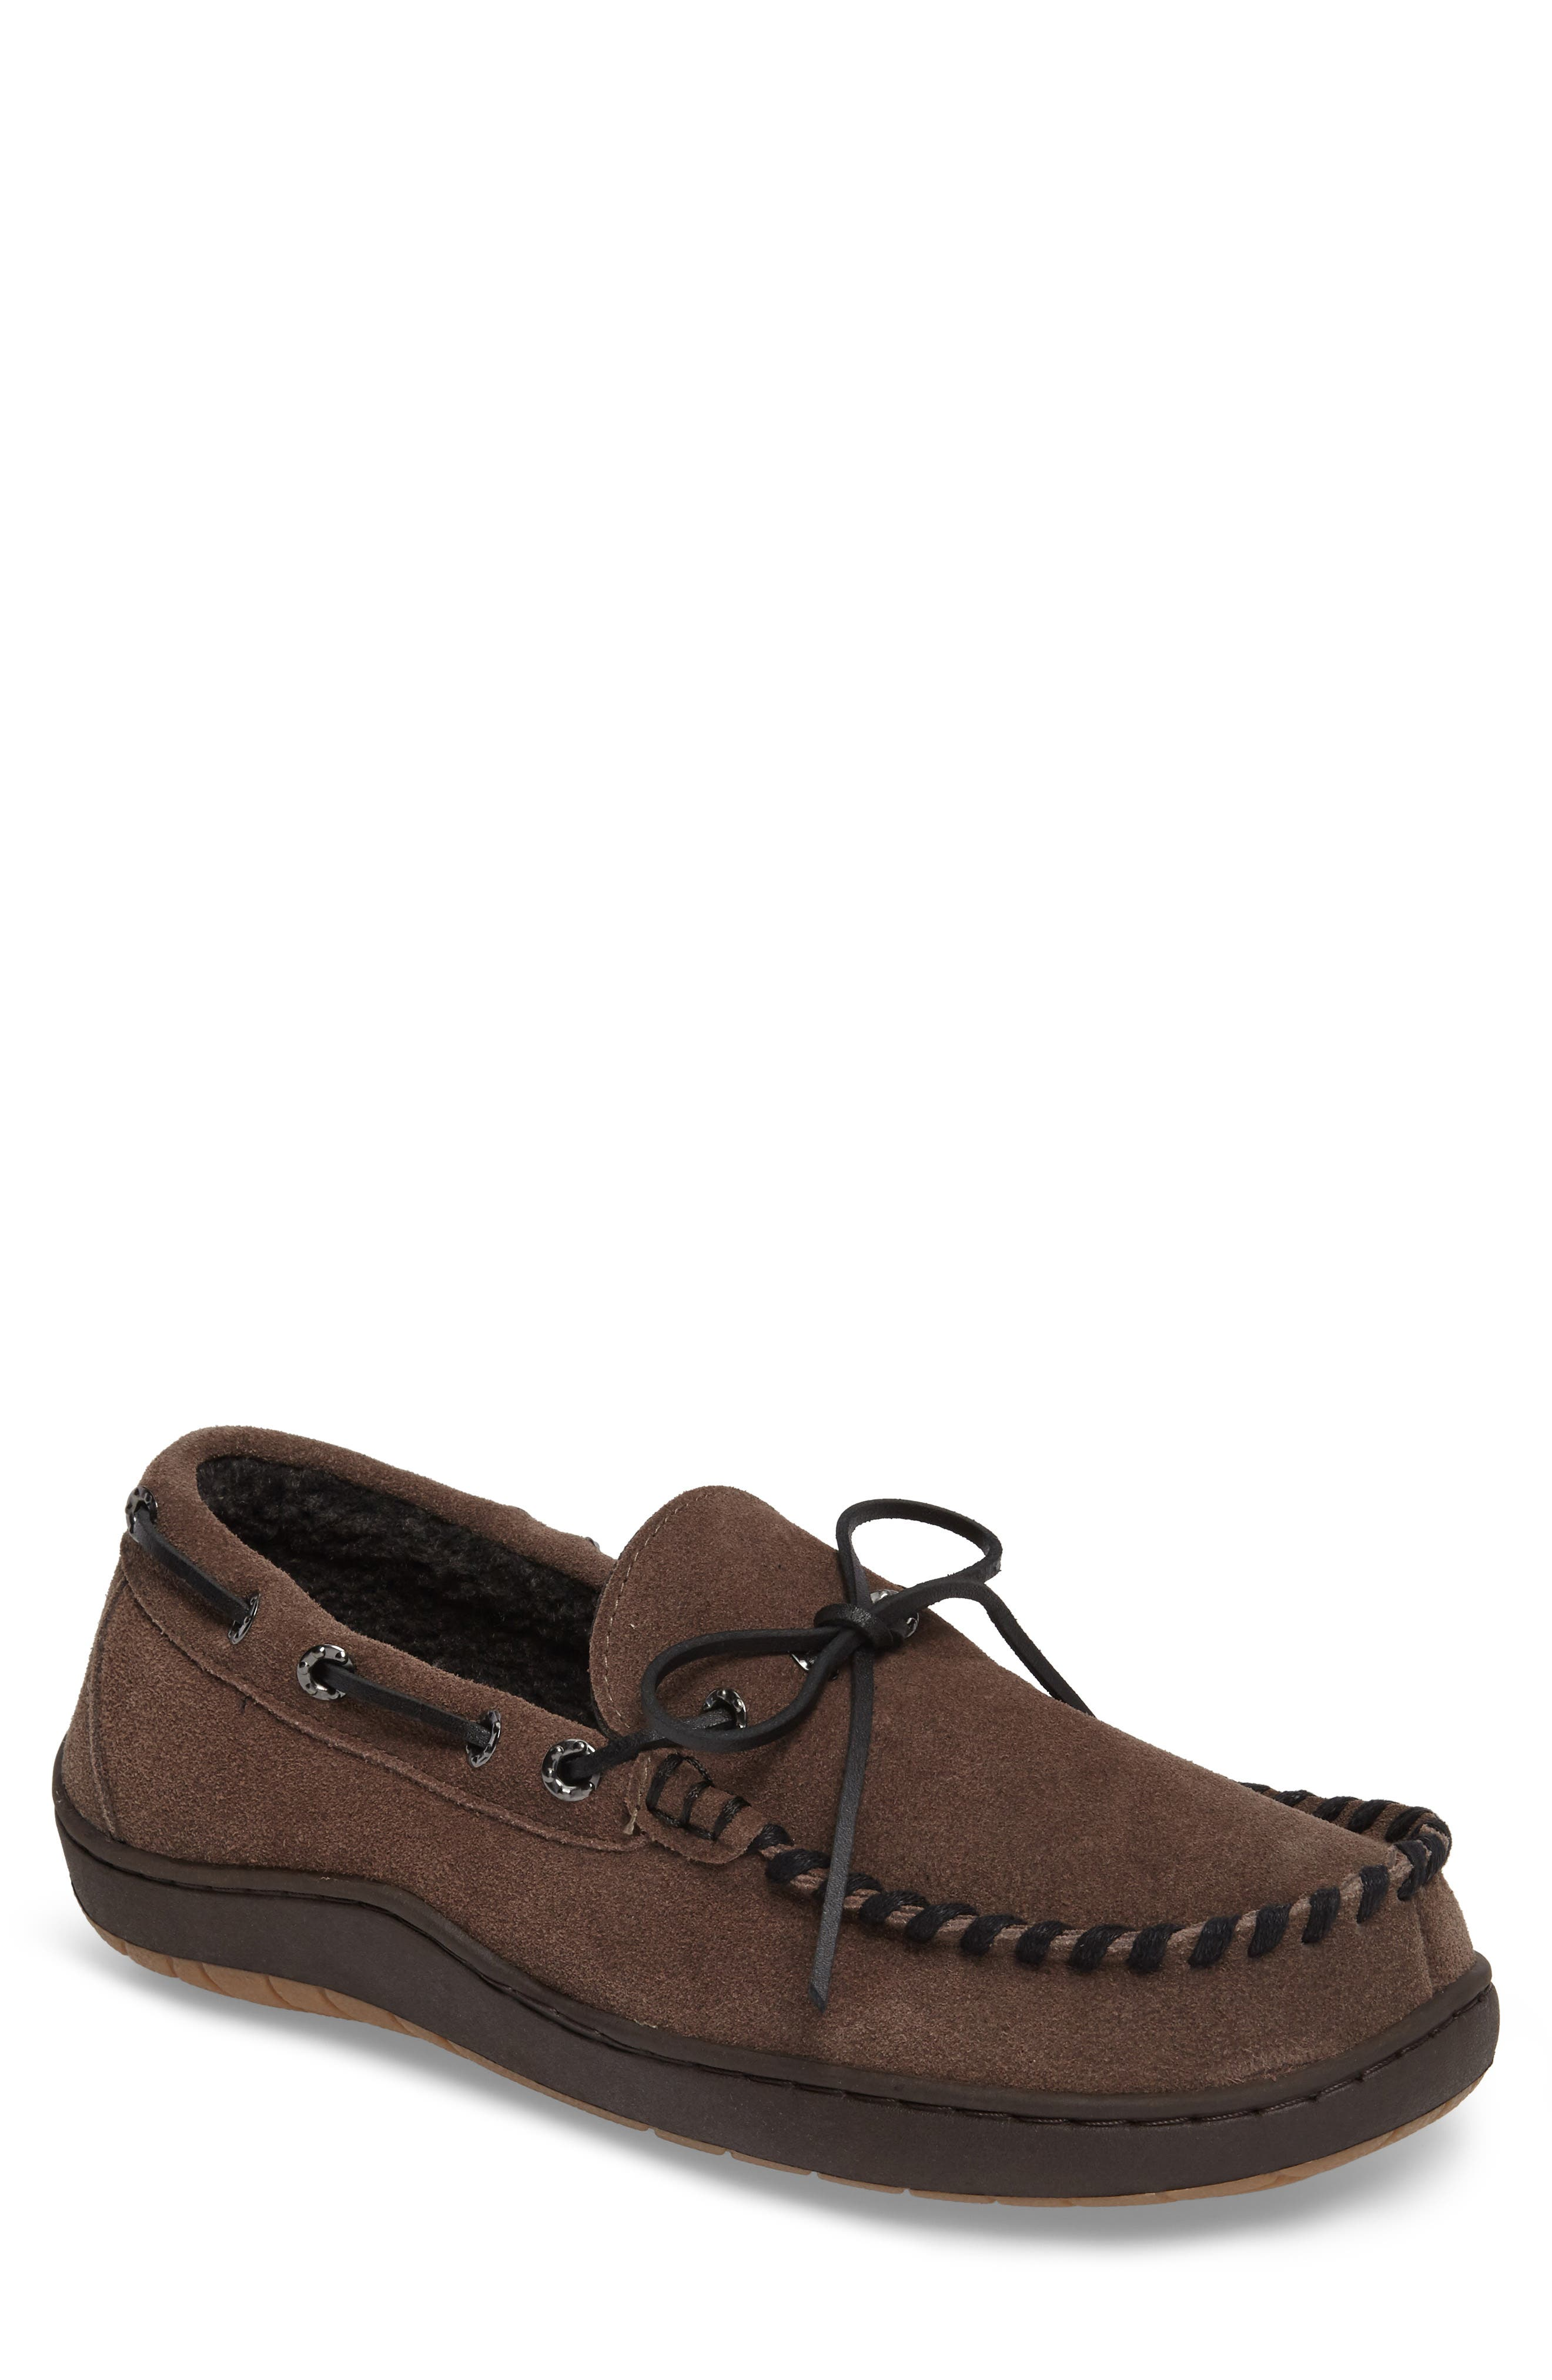 Therman Slipper,                         Main,                         color, CHARCOAL